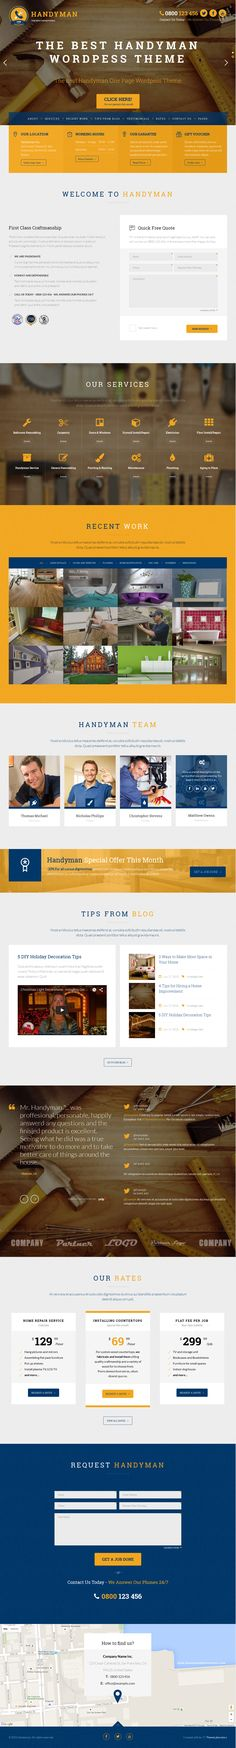 Handyman is popular One Page WordPress child theme for Layers. It is suitable for handyman, repairman, craftsman, plumber, electrician or any kind of service business websites. #website #design download now➯ https://themeforest.net/item/handyman-craftsman-business-wordpress-theme/12249679?ref=Datasata #DIYDude